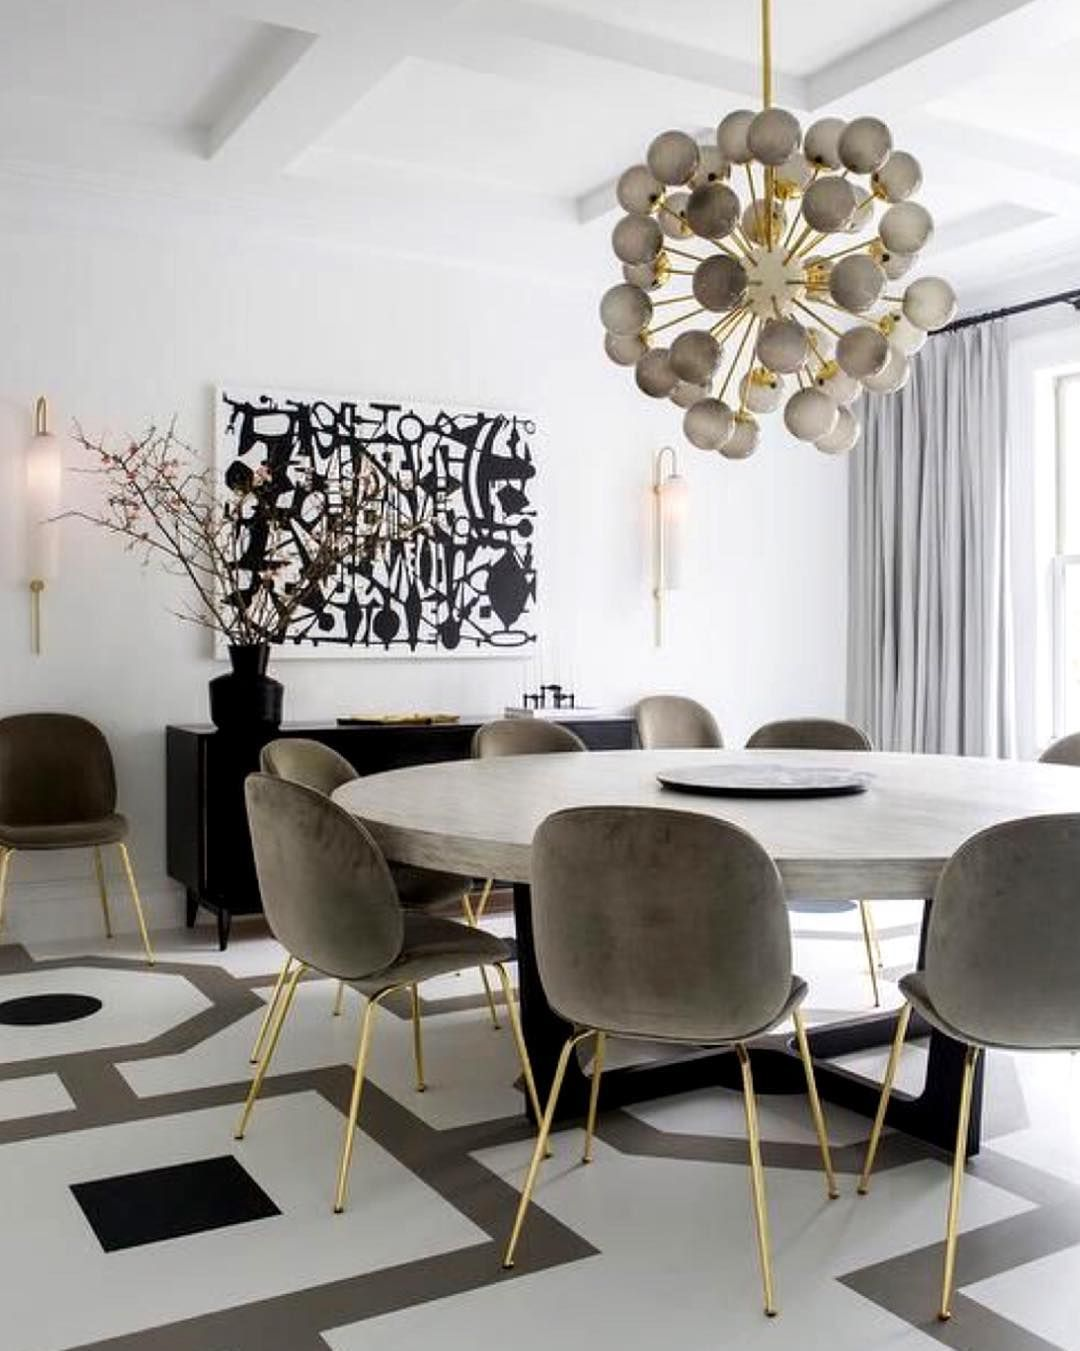 Little Black Book Of Interiors On Instagram Tonight Our Dining Tables Won T Be The Same Without All In 2020 Black Dining Room Gold Dining Room Round Dining Room Sets